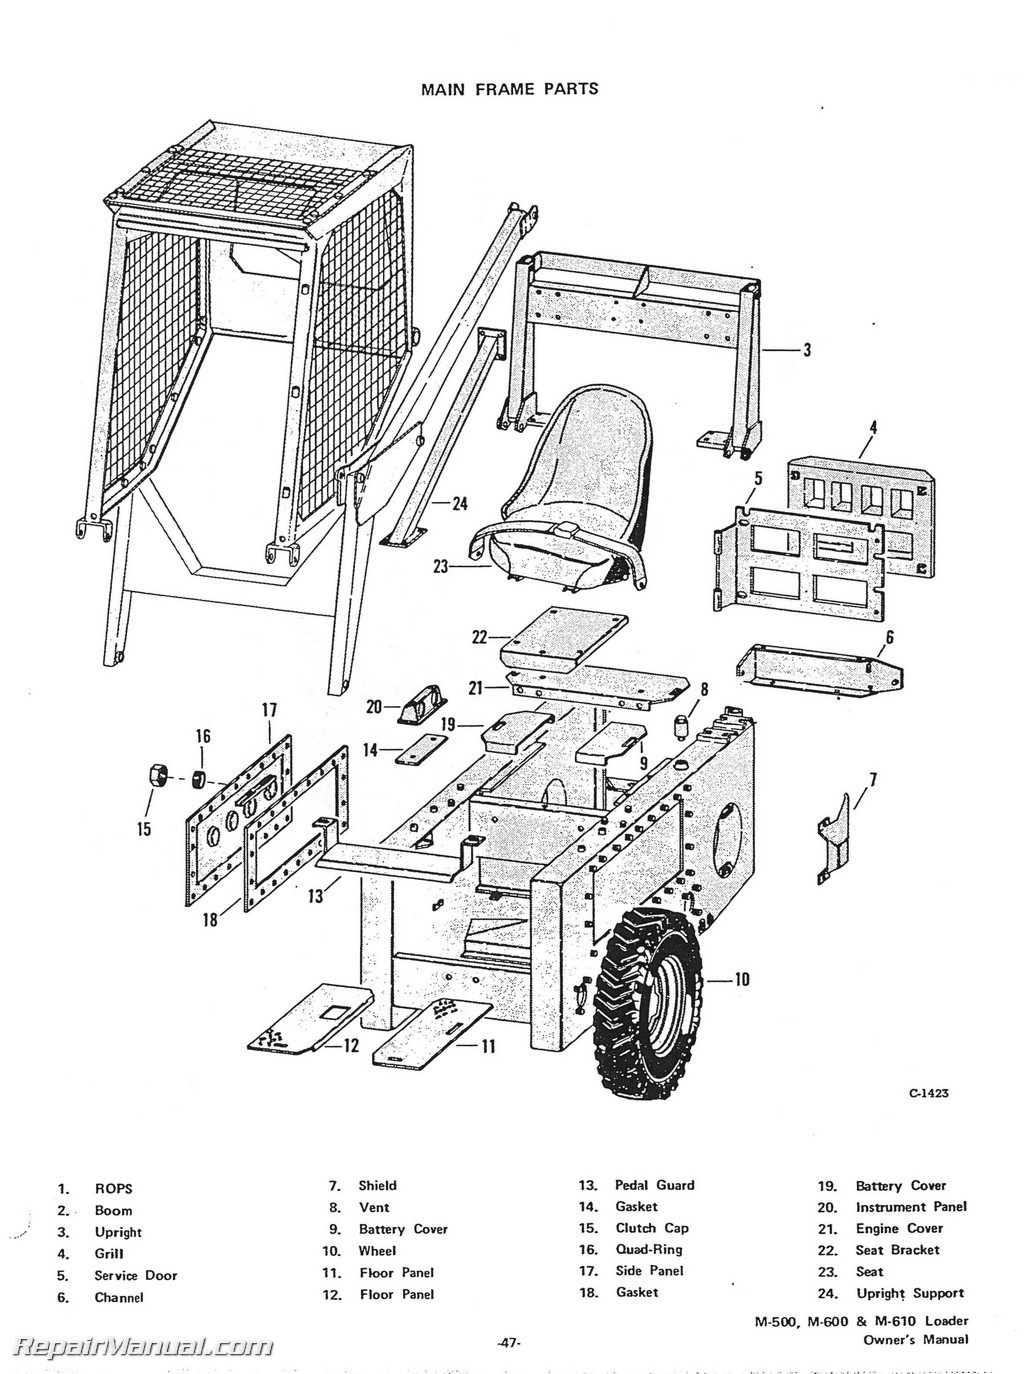 Skid Steer Case C Parts Diagram Images Auto Fuse Box Diagram